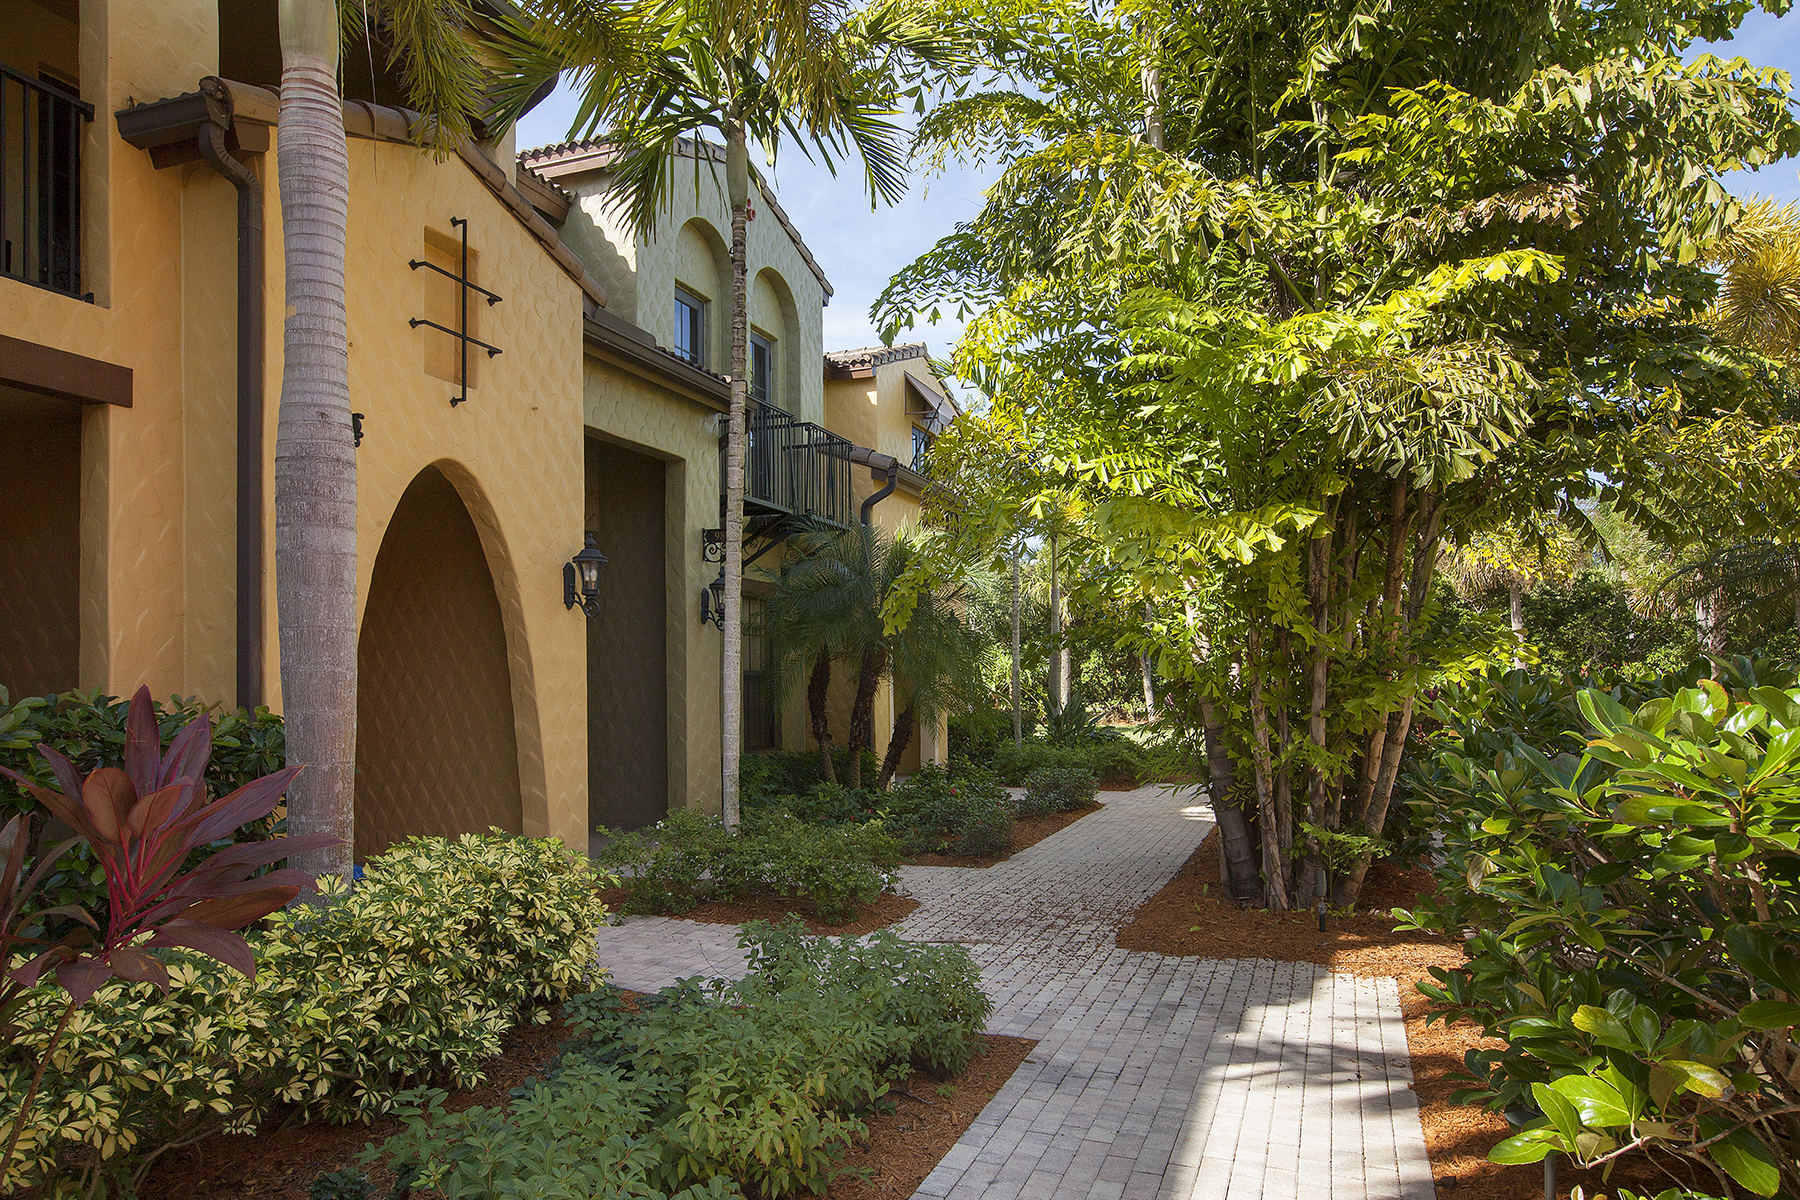 Condominium for Sale at LELY RESORT 9155 Delano St 9805 Naples, Florida, 34113 United States